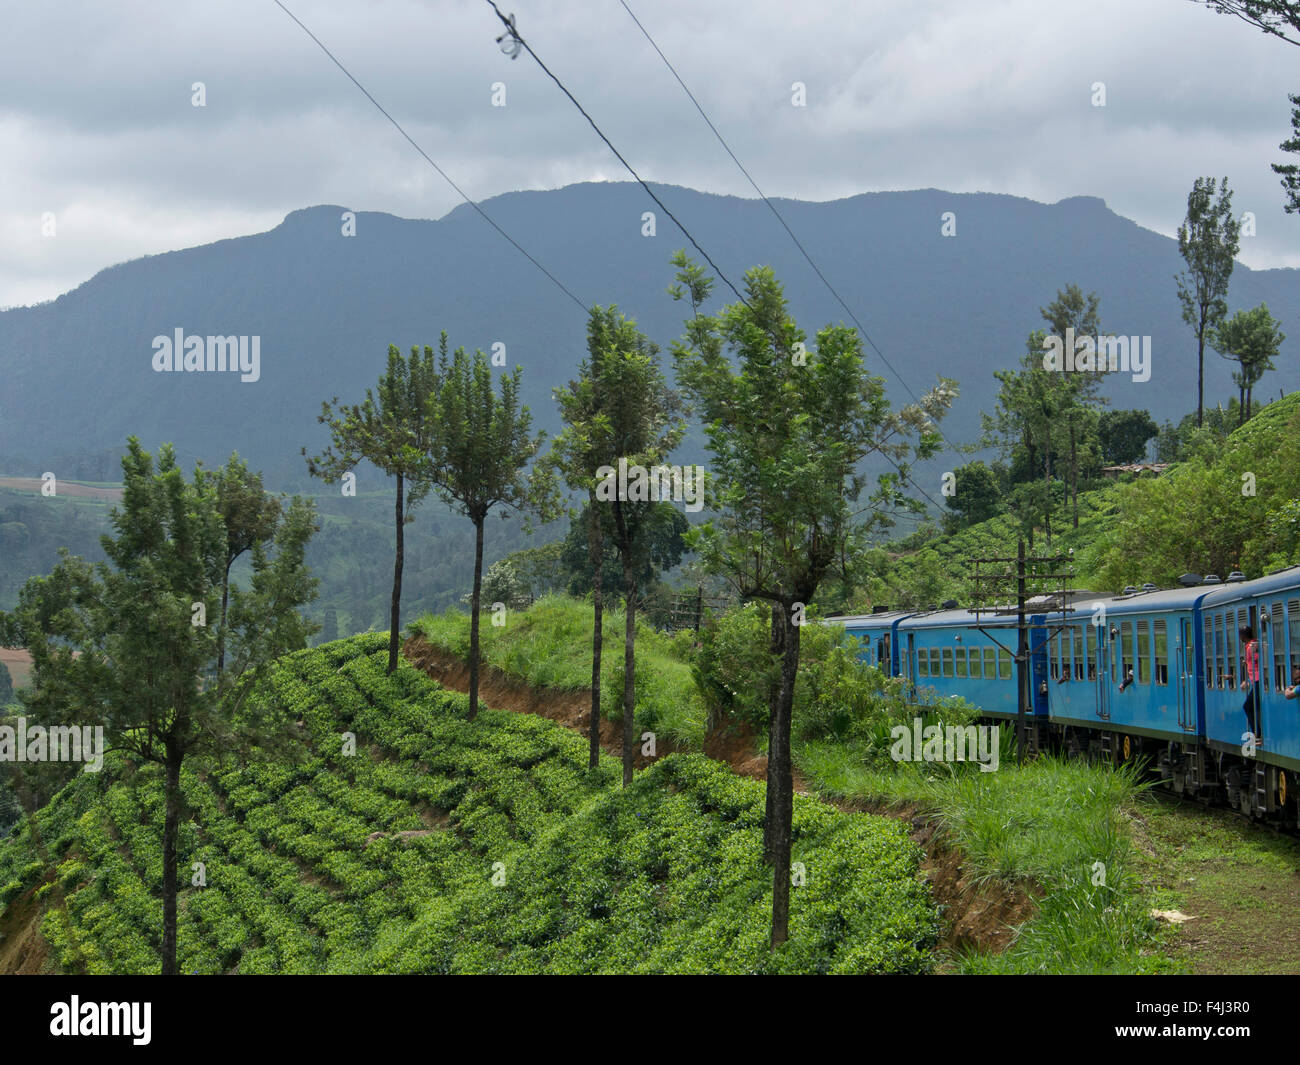 Tea plantations on train journey from Kandy to Ella, in the highlands of Sri Lanka, Asia - Stock Image